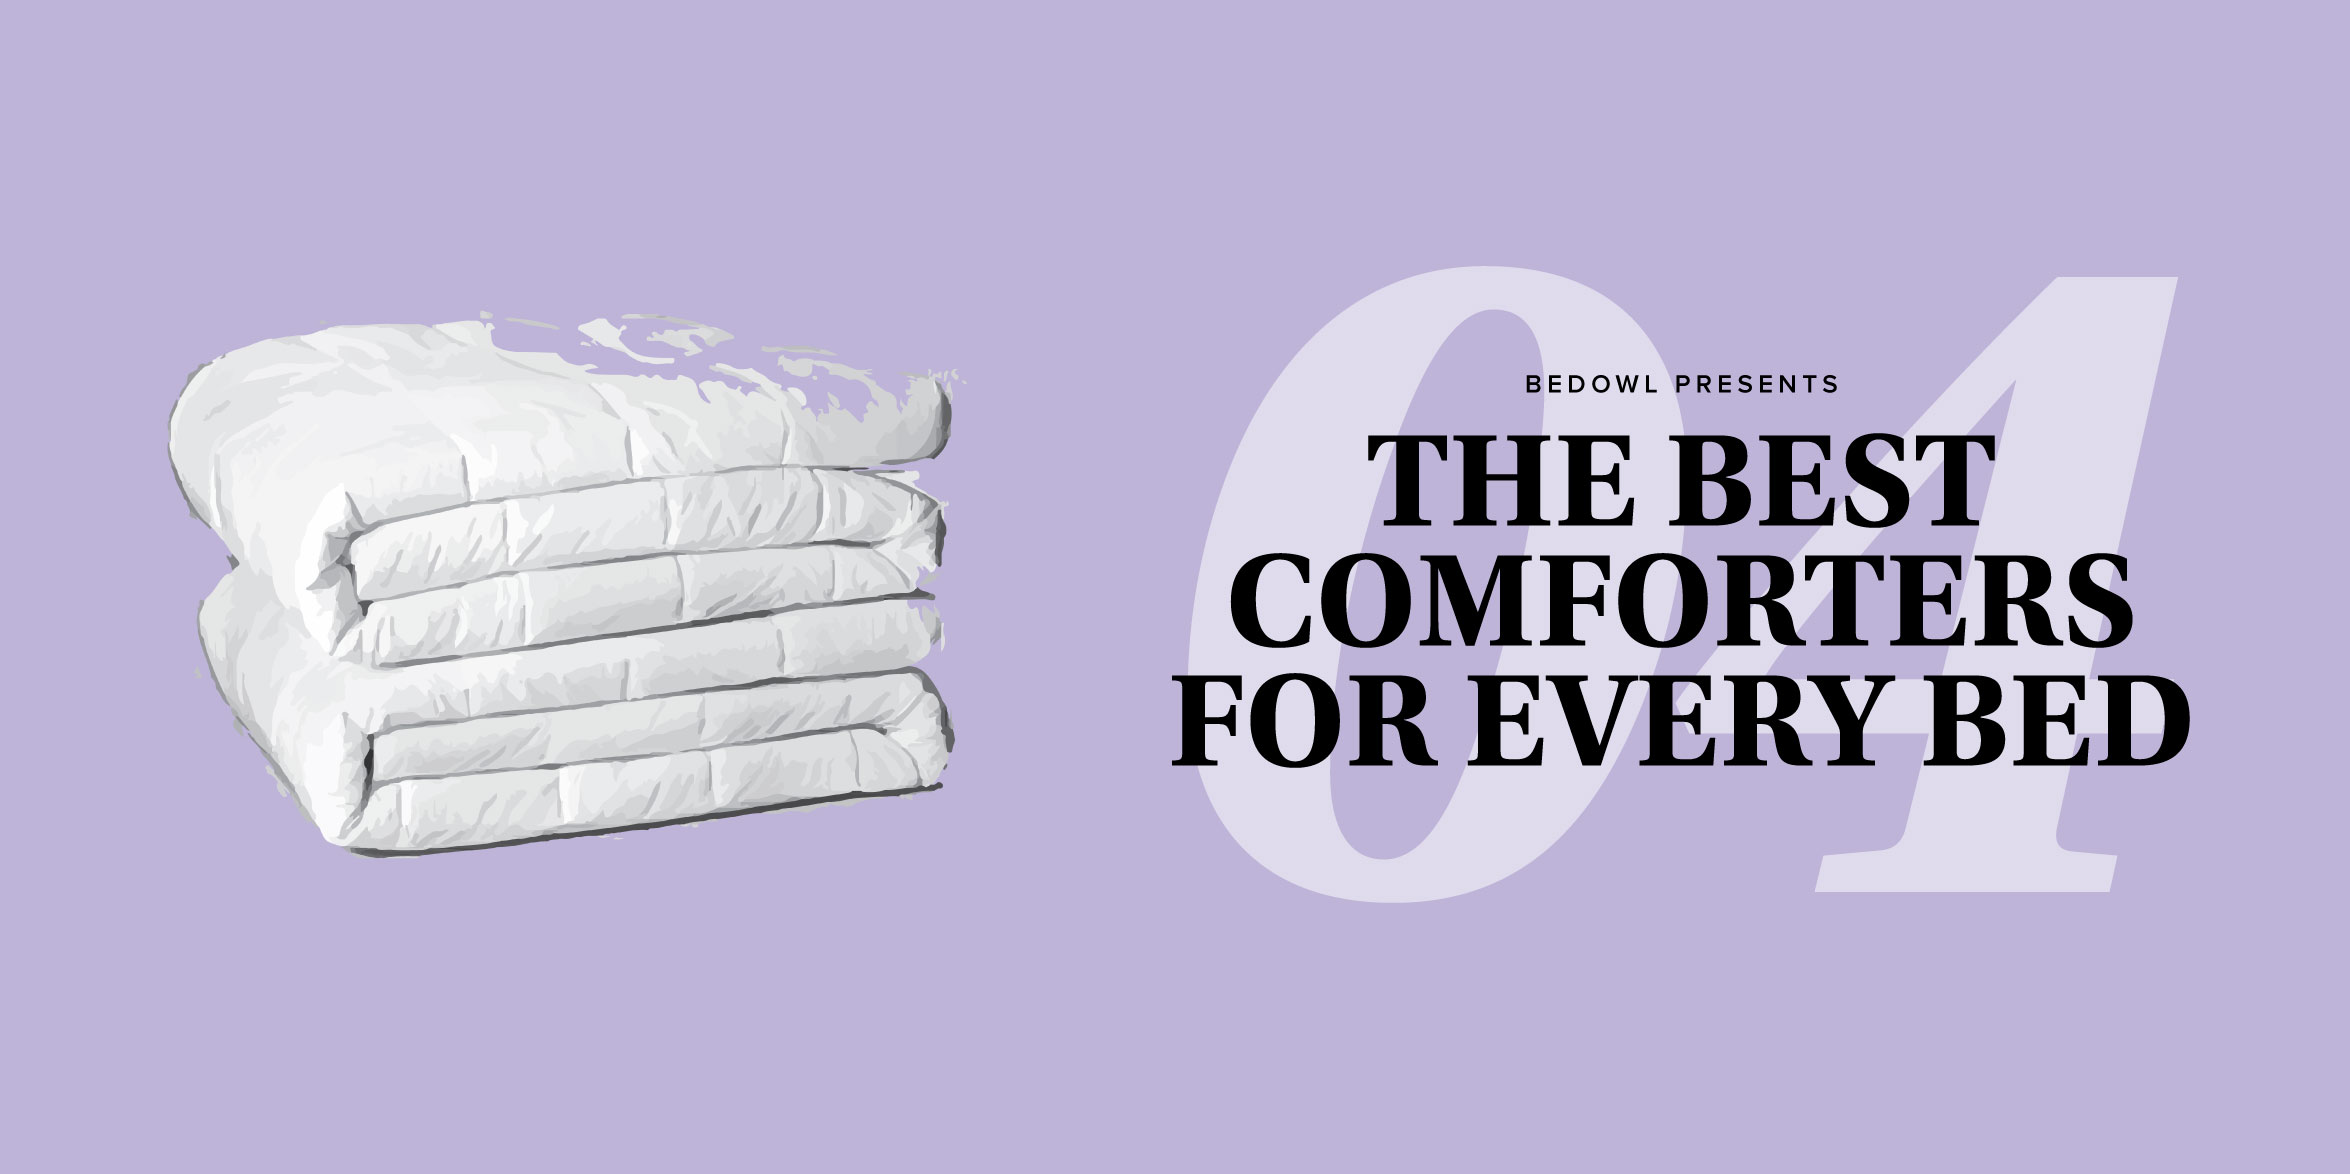 The Best Comforters for Every Bed by Bedowl